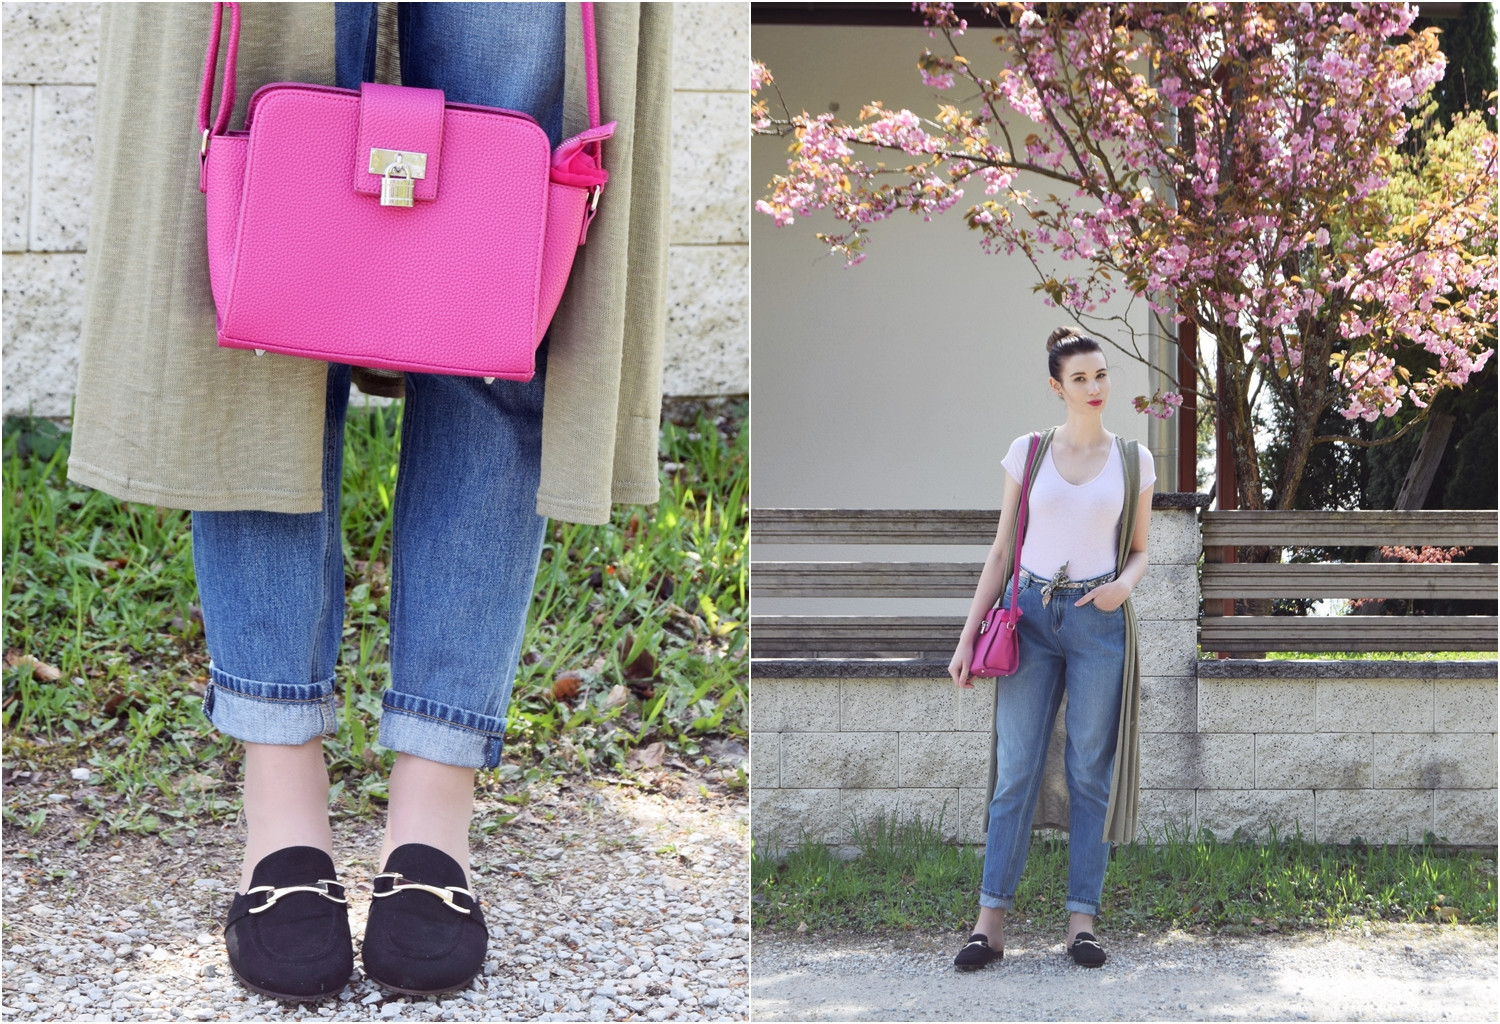 spring_outfit_ootd_pink_fashion_style_zalabell_2